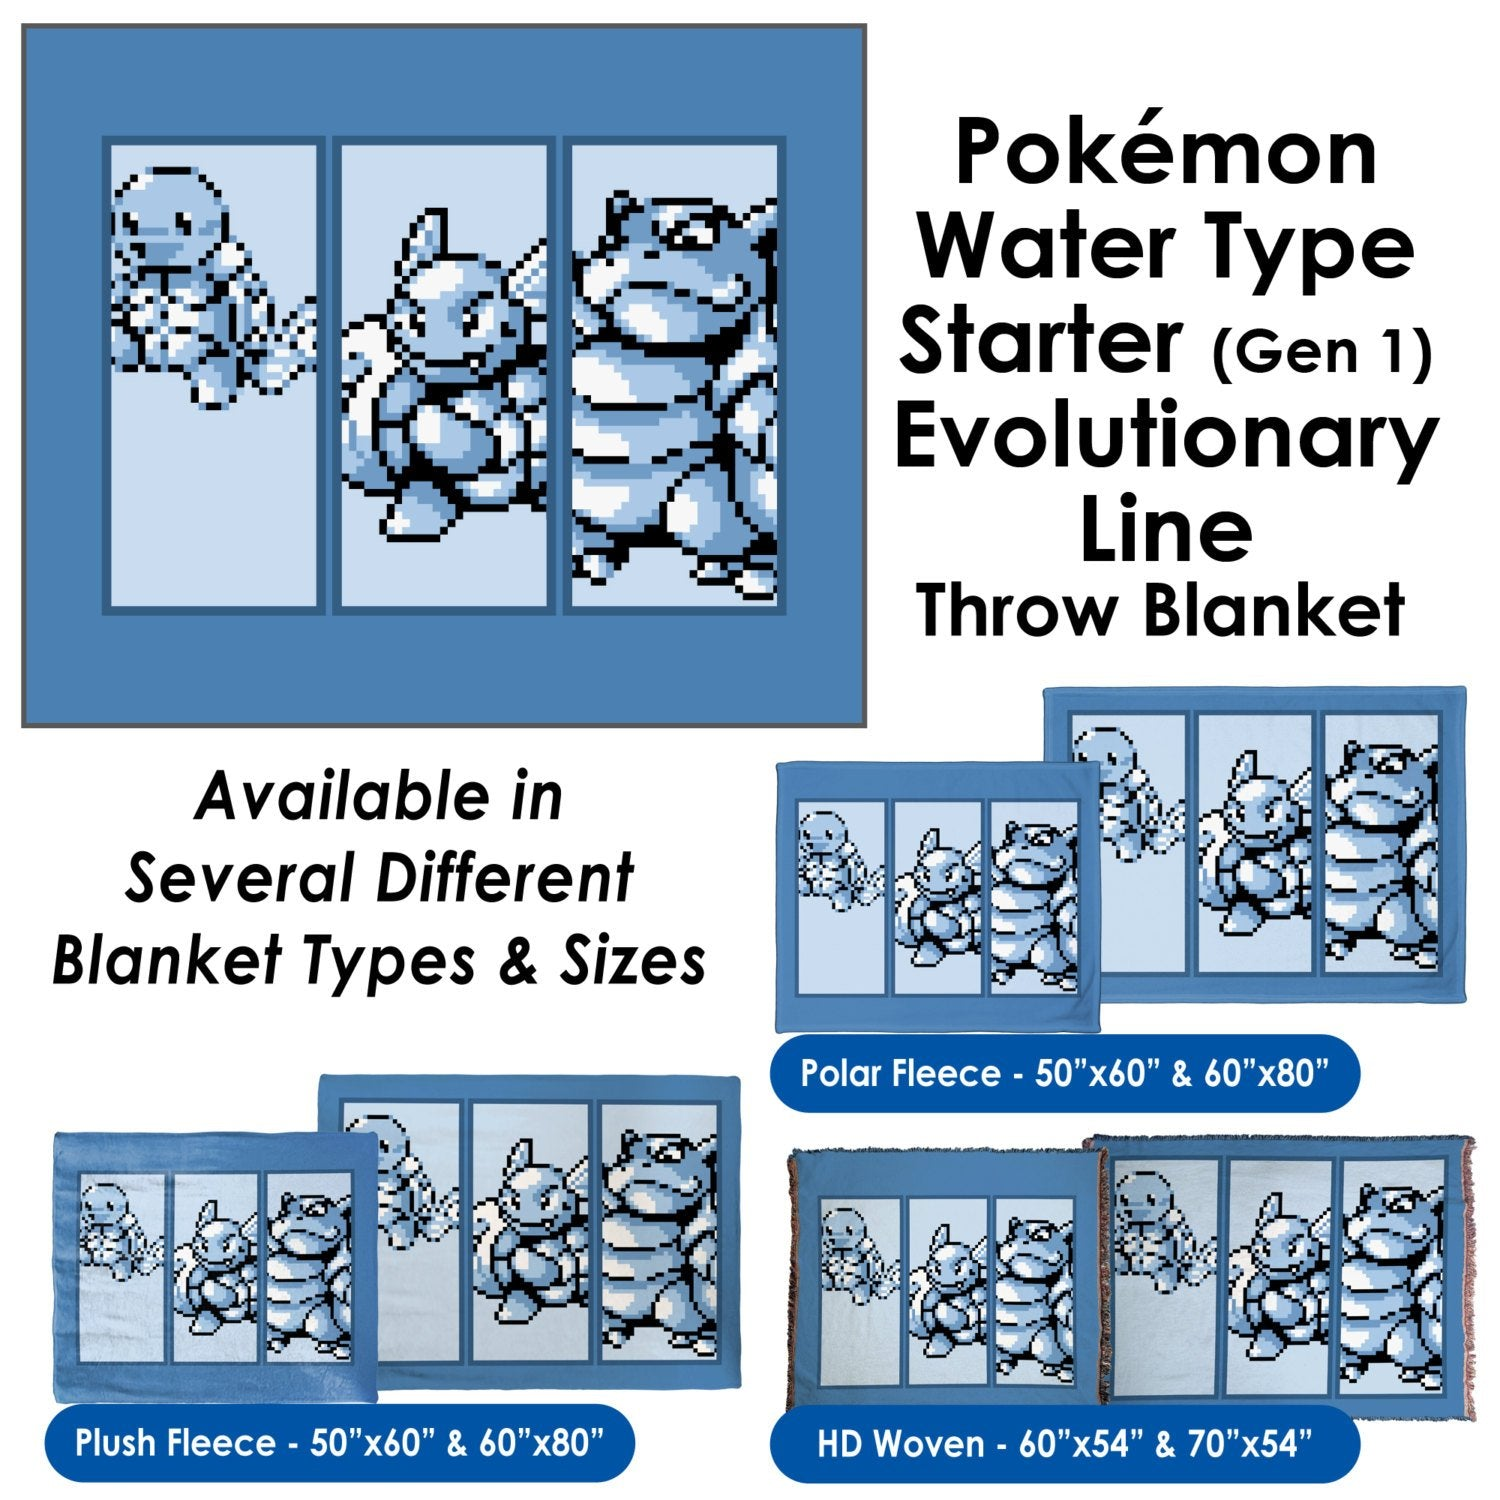 Pokemon Water Type Starter (Gen 1) Evolutionary Line - Throw Blanket / Tapestry Wall Hanging